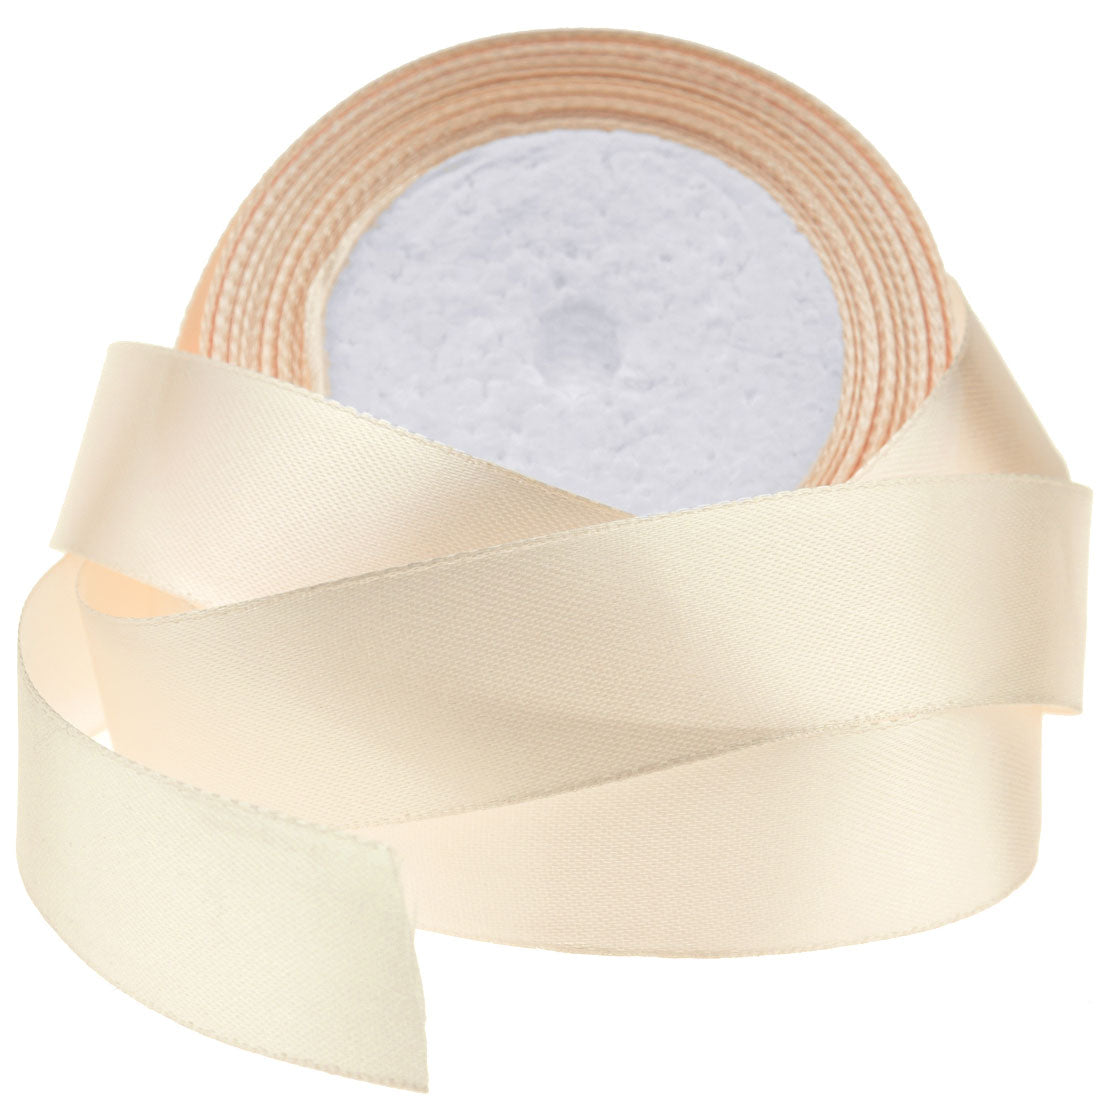 25mm Beige Single Sided Satin Ribbon